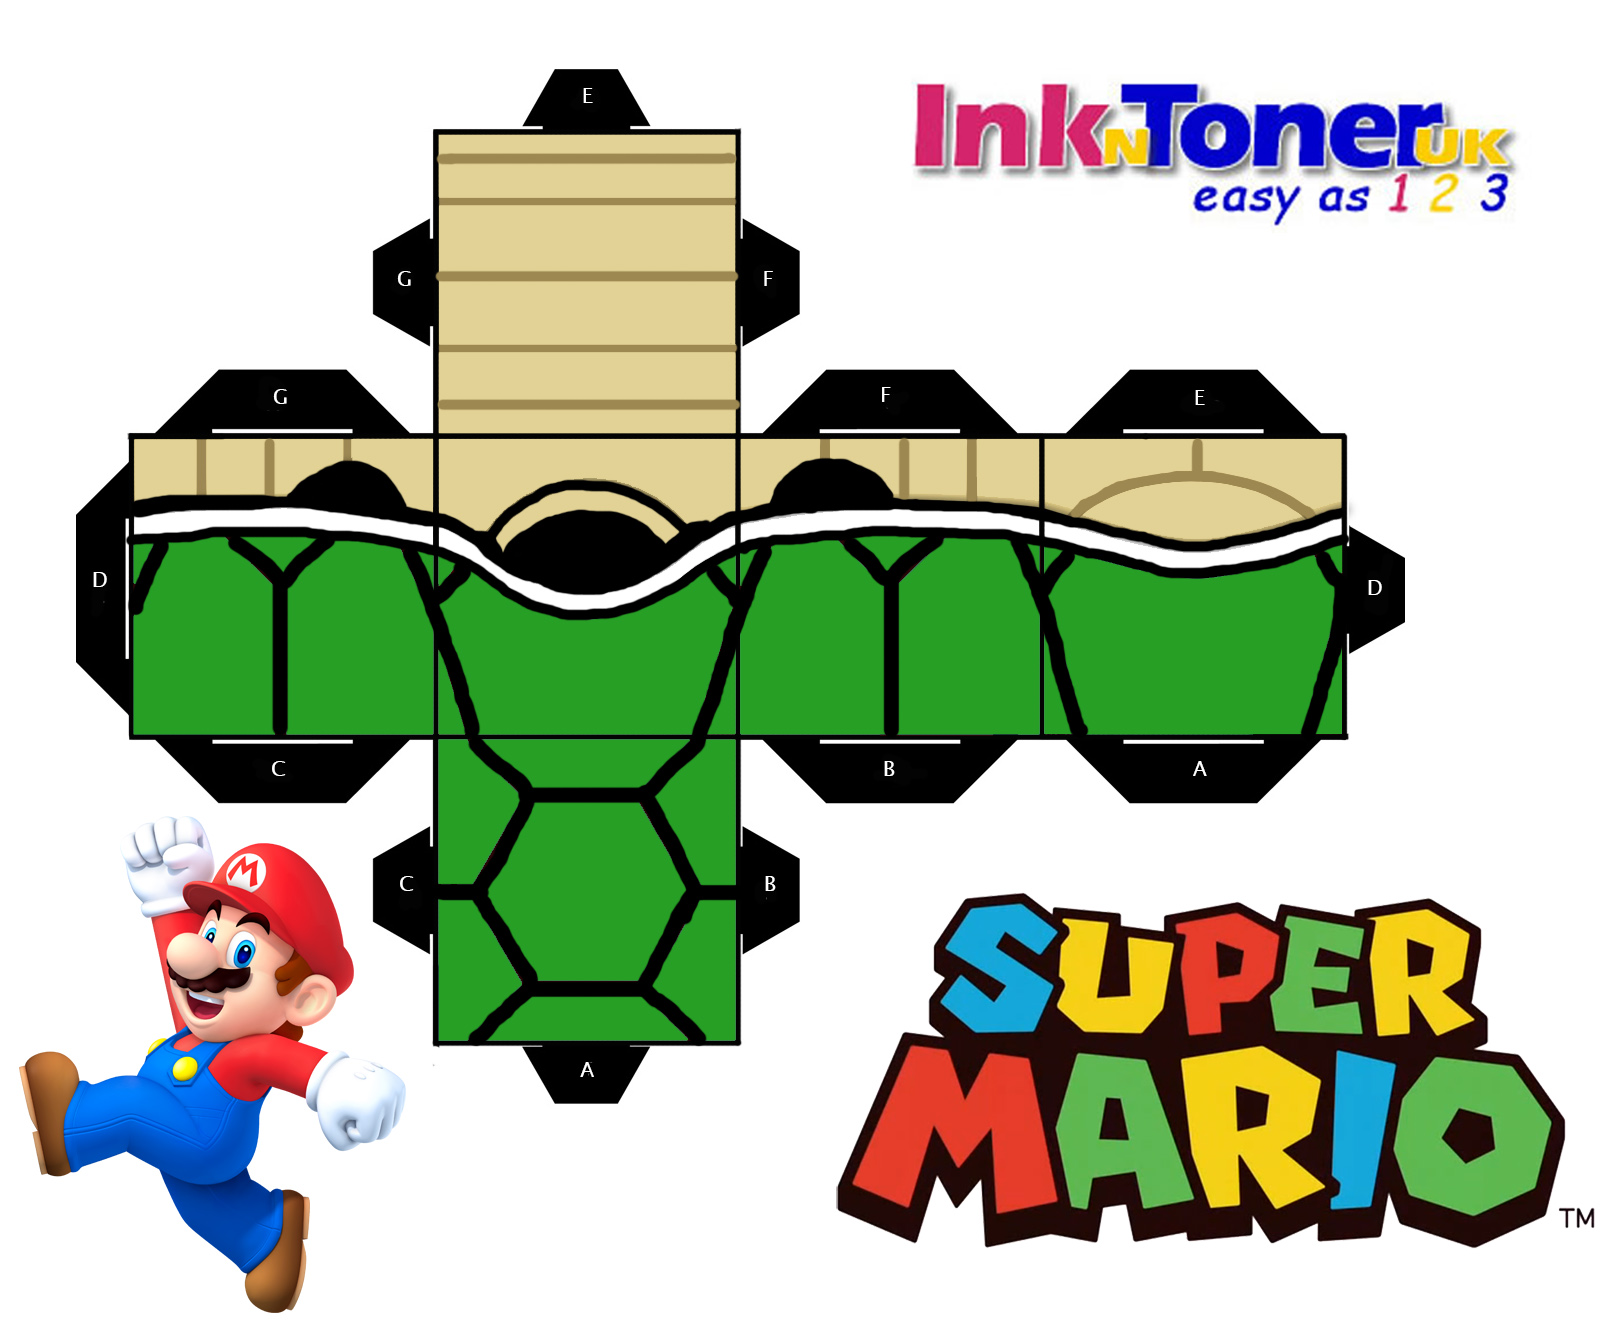 photograph about Printable Paper Craft titled Print your personal Tremendous Mario Papercraft! Inkntoneruk Weblog